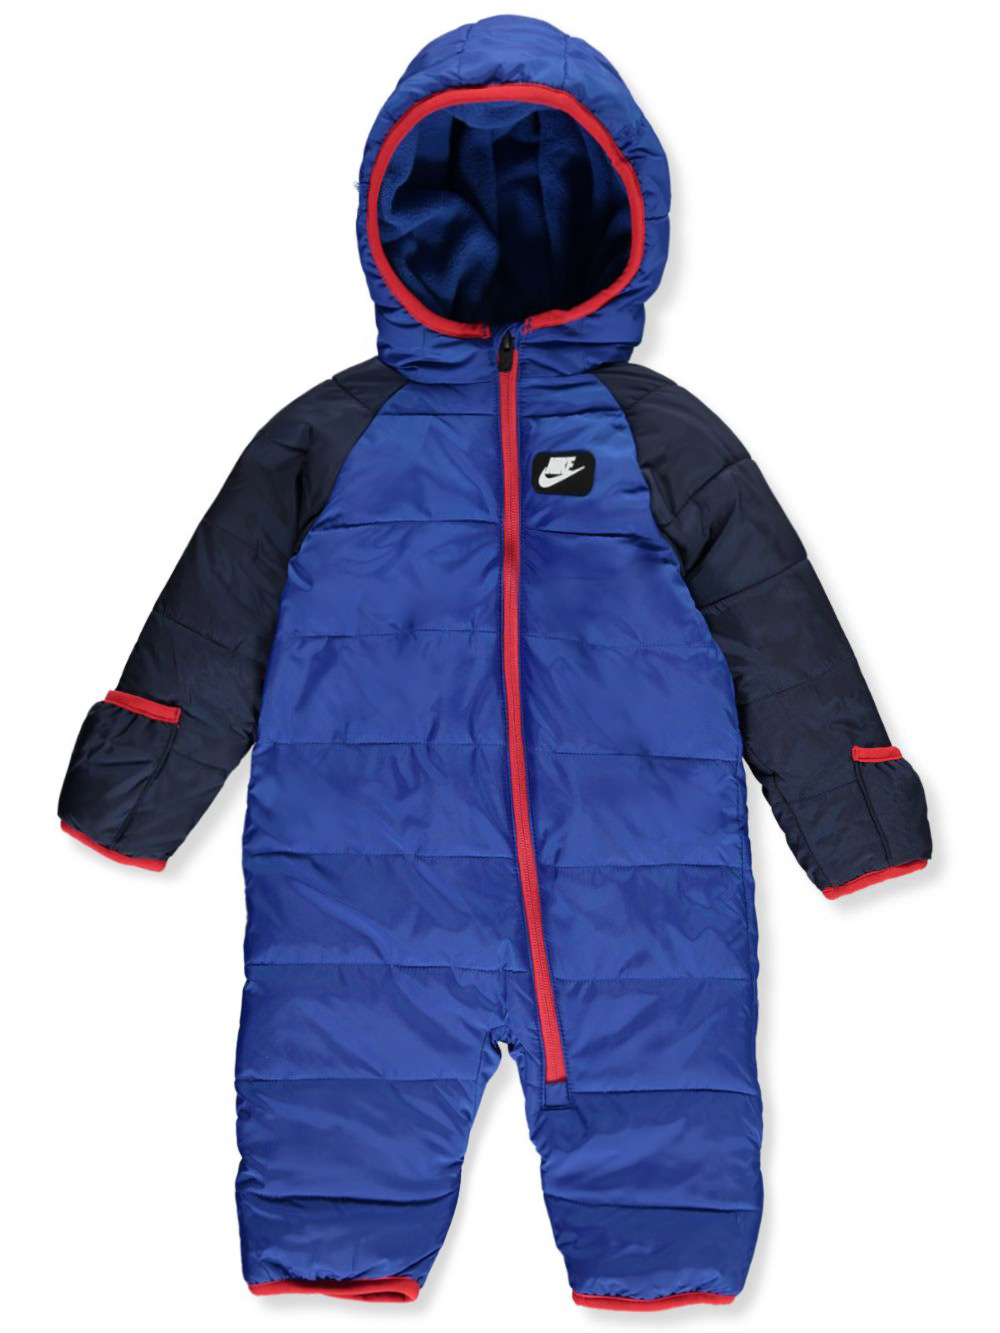 Baby Boys' Fleece Lined Snowsuit